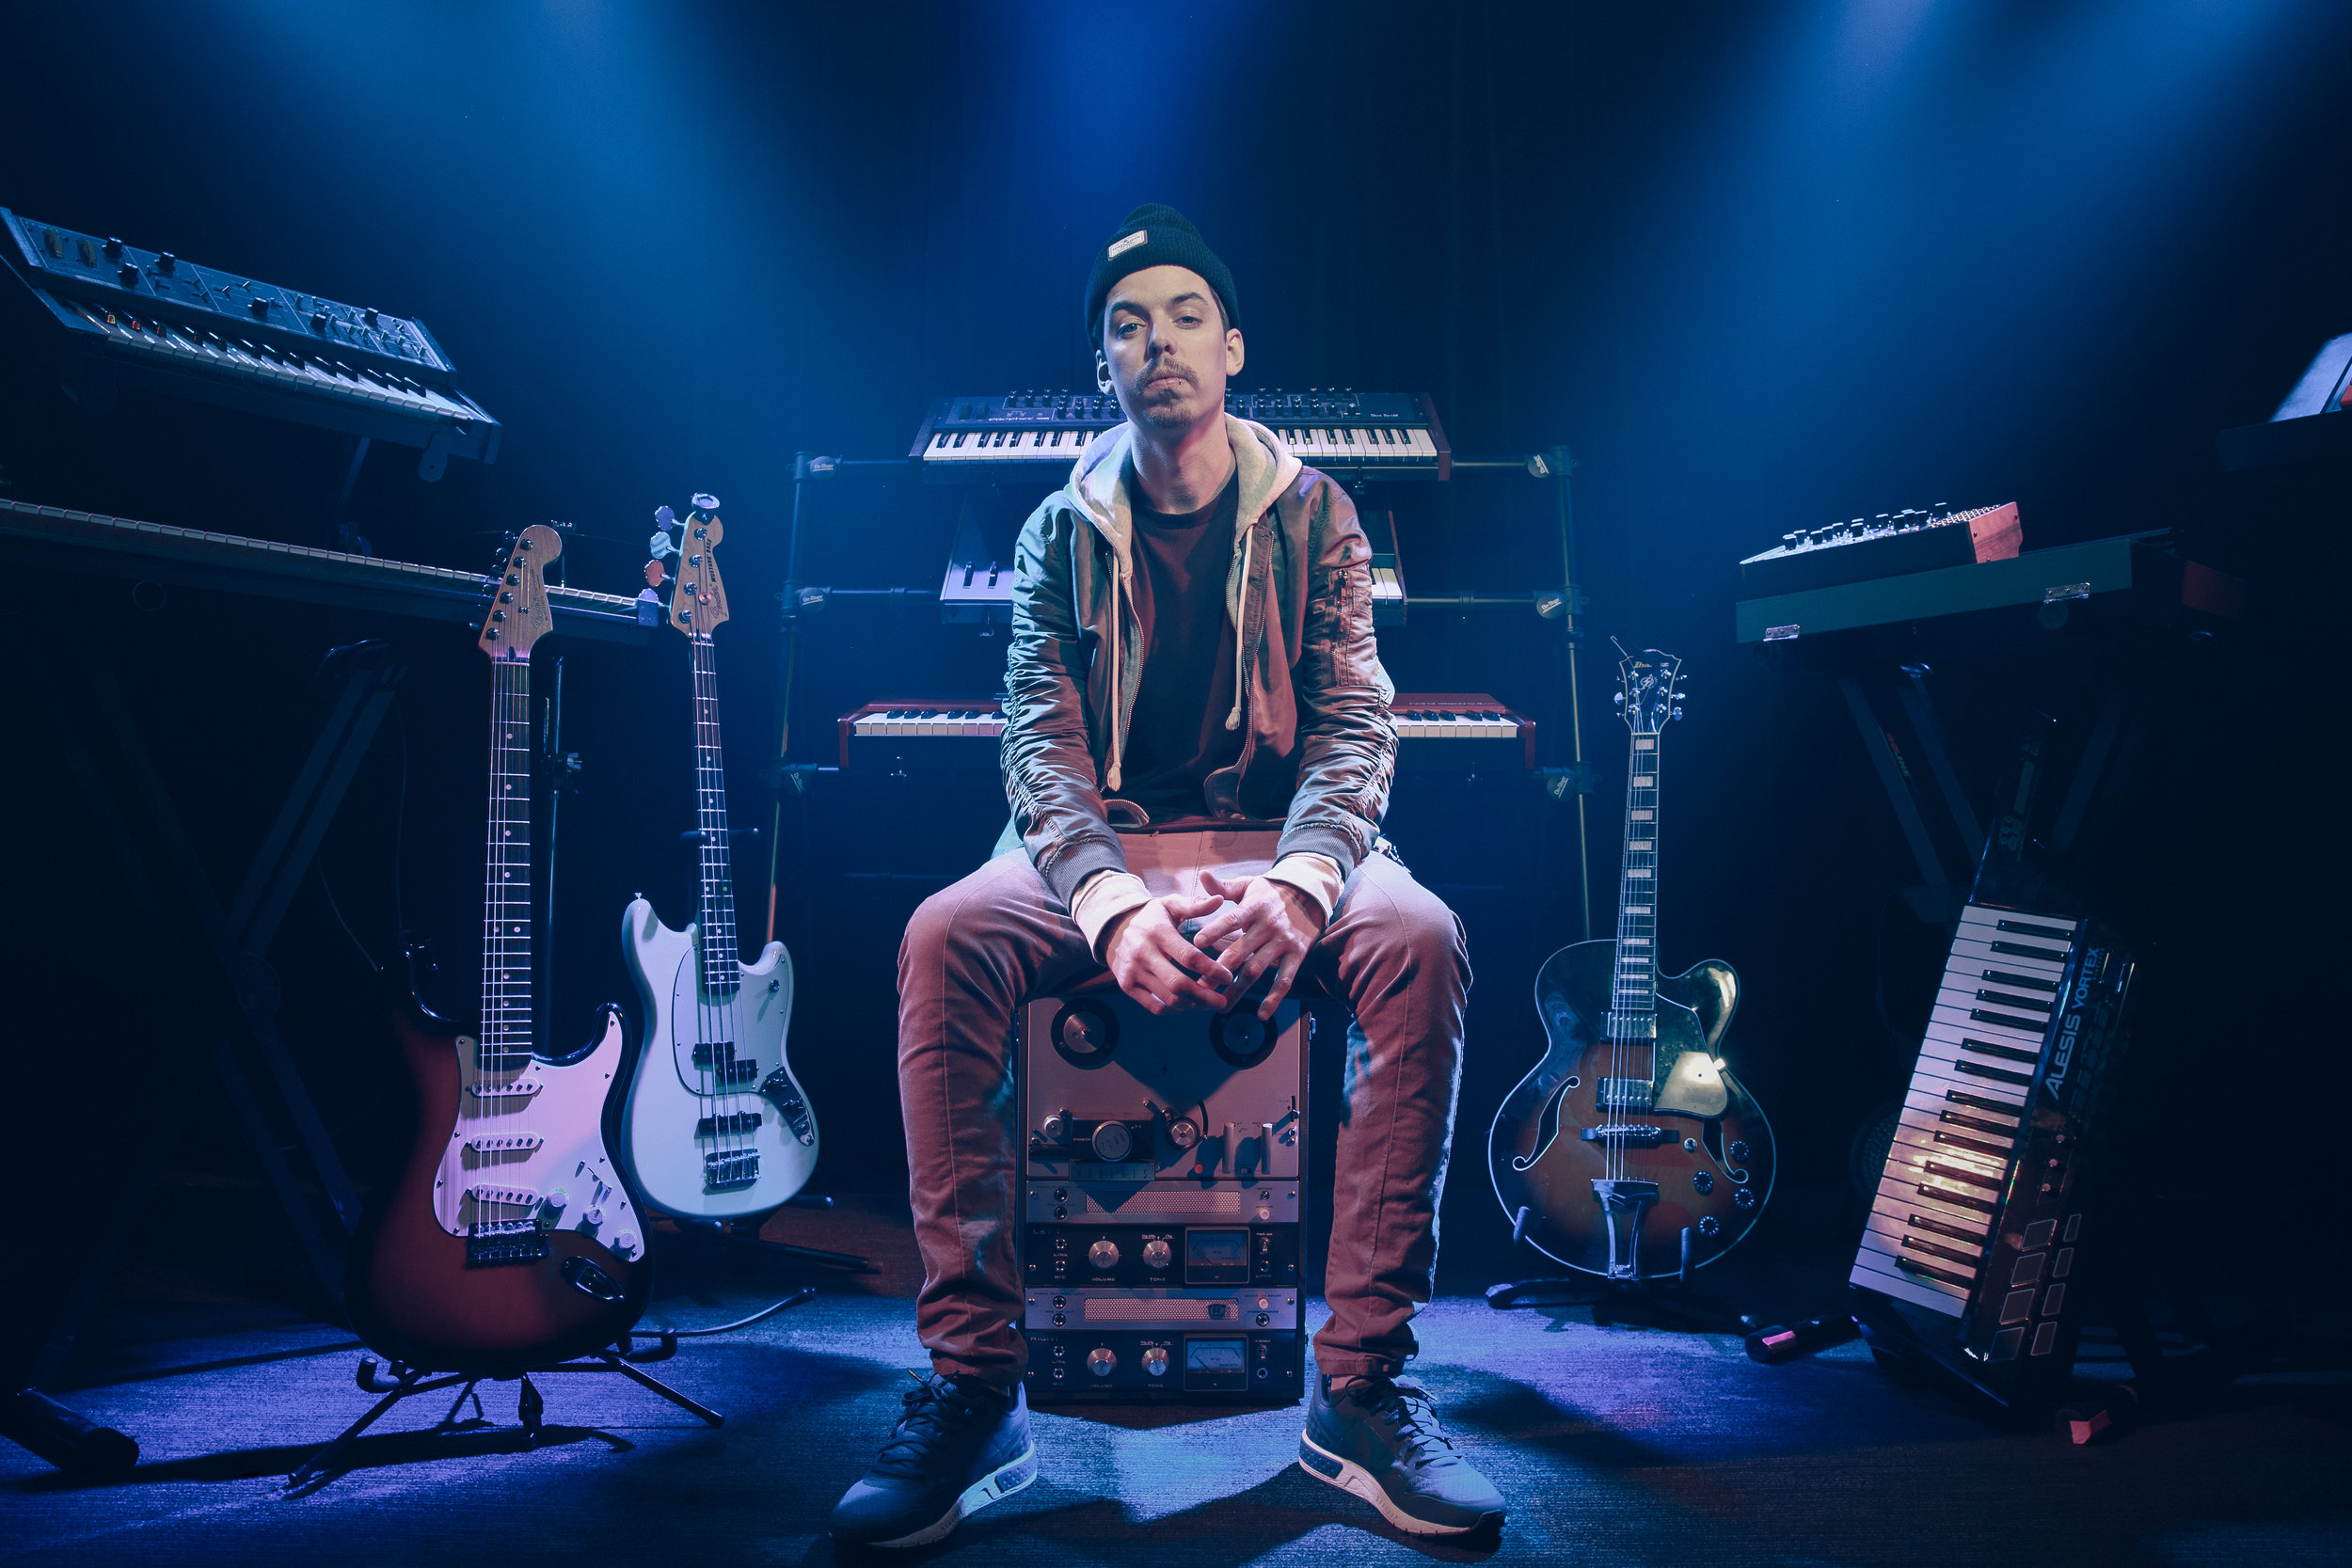 Grieves - Seattle-based hip-hop musician and rapper Benjamin Laub, better known as Grieves, balances his dueling impulses through his music: the need to cut loose and the need to vent. Grieves wants to have a good time while also keeping it real and honest. Sonically, listeners will find him experimenting with fluttering trap beats one moment and hallmarks of classic soul, like rich guitar and humming organs, the next.